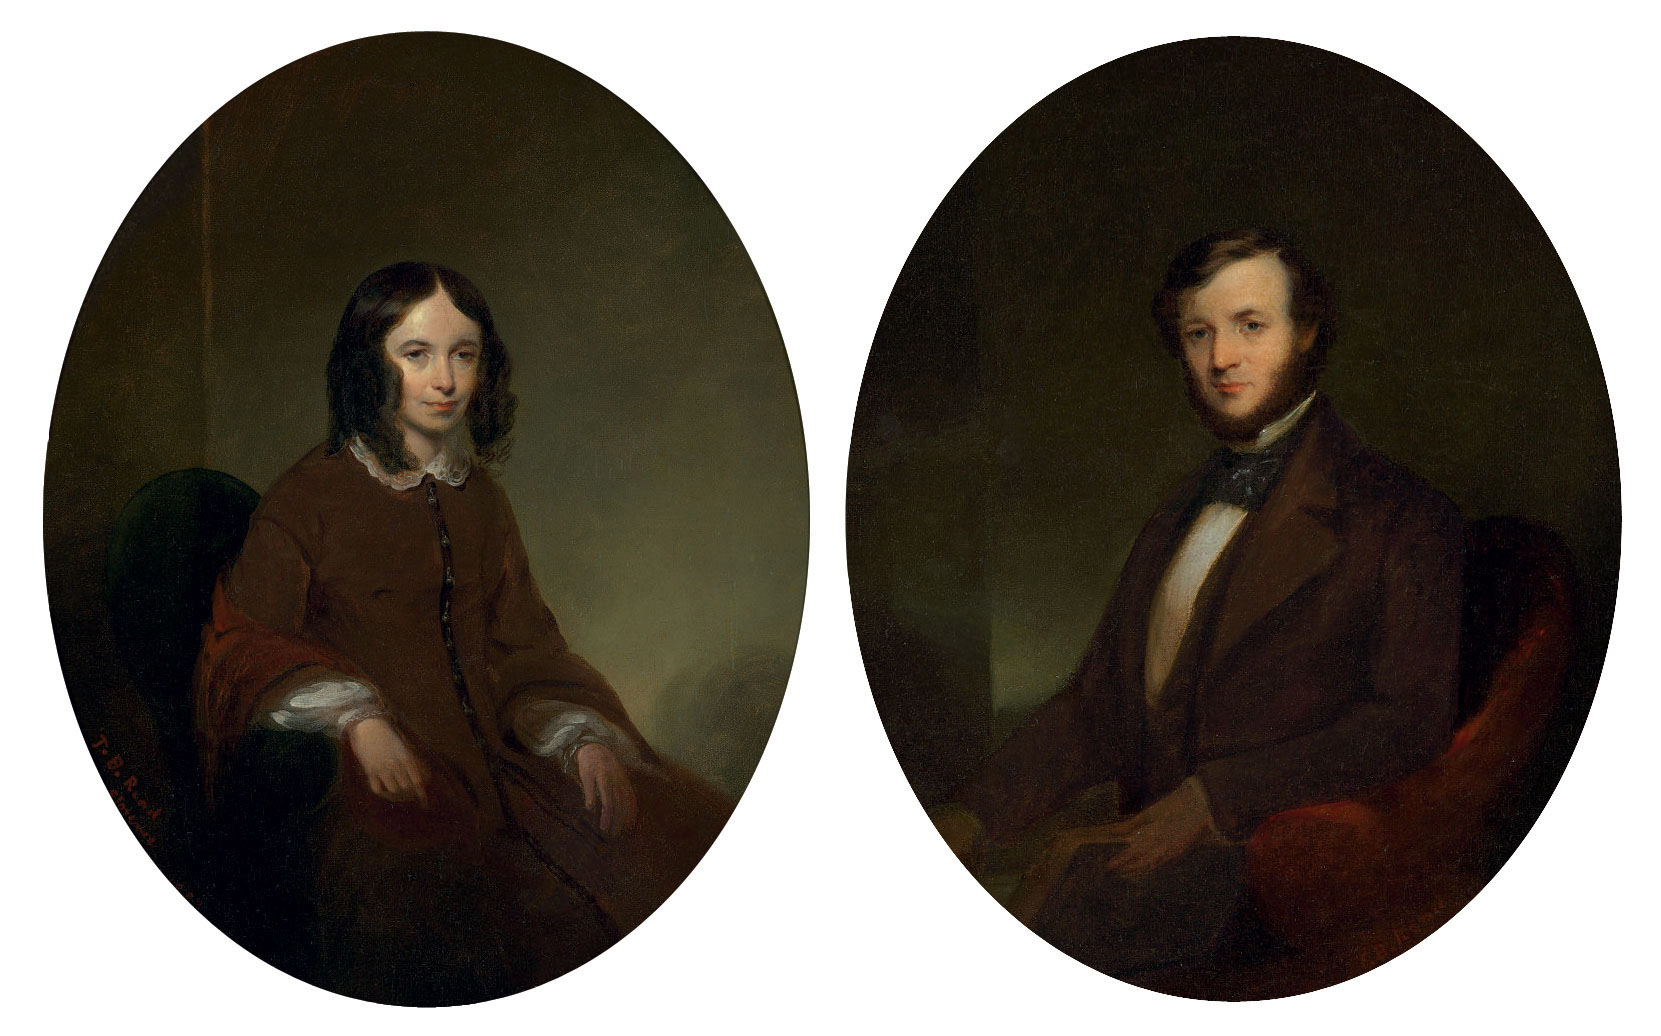 A Pair of Portraits of Elizabeth Barrett Browning and Robert Browning